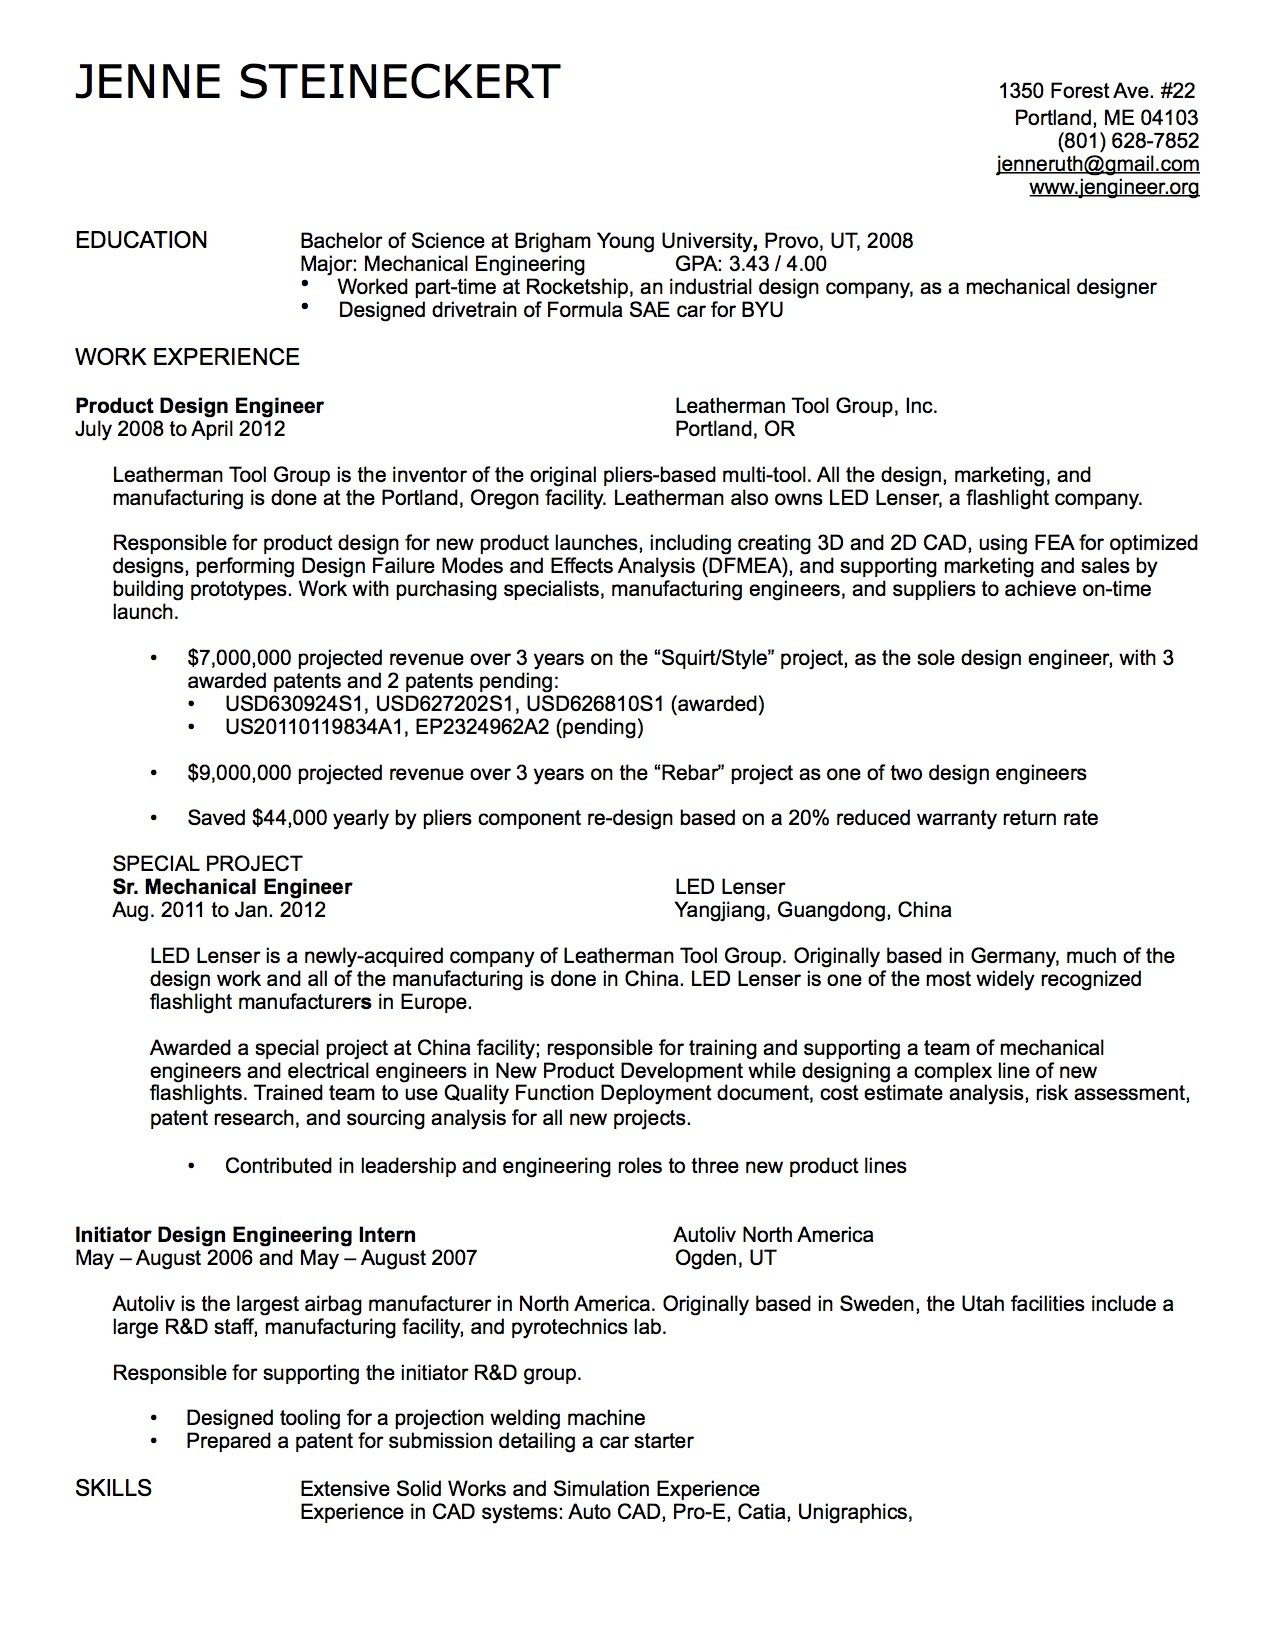 resume interests and activities resume skills and interests